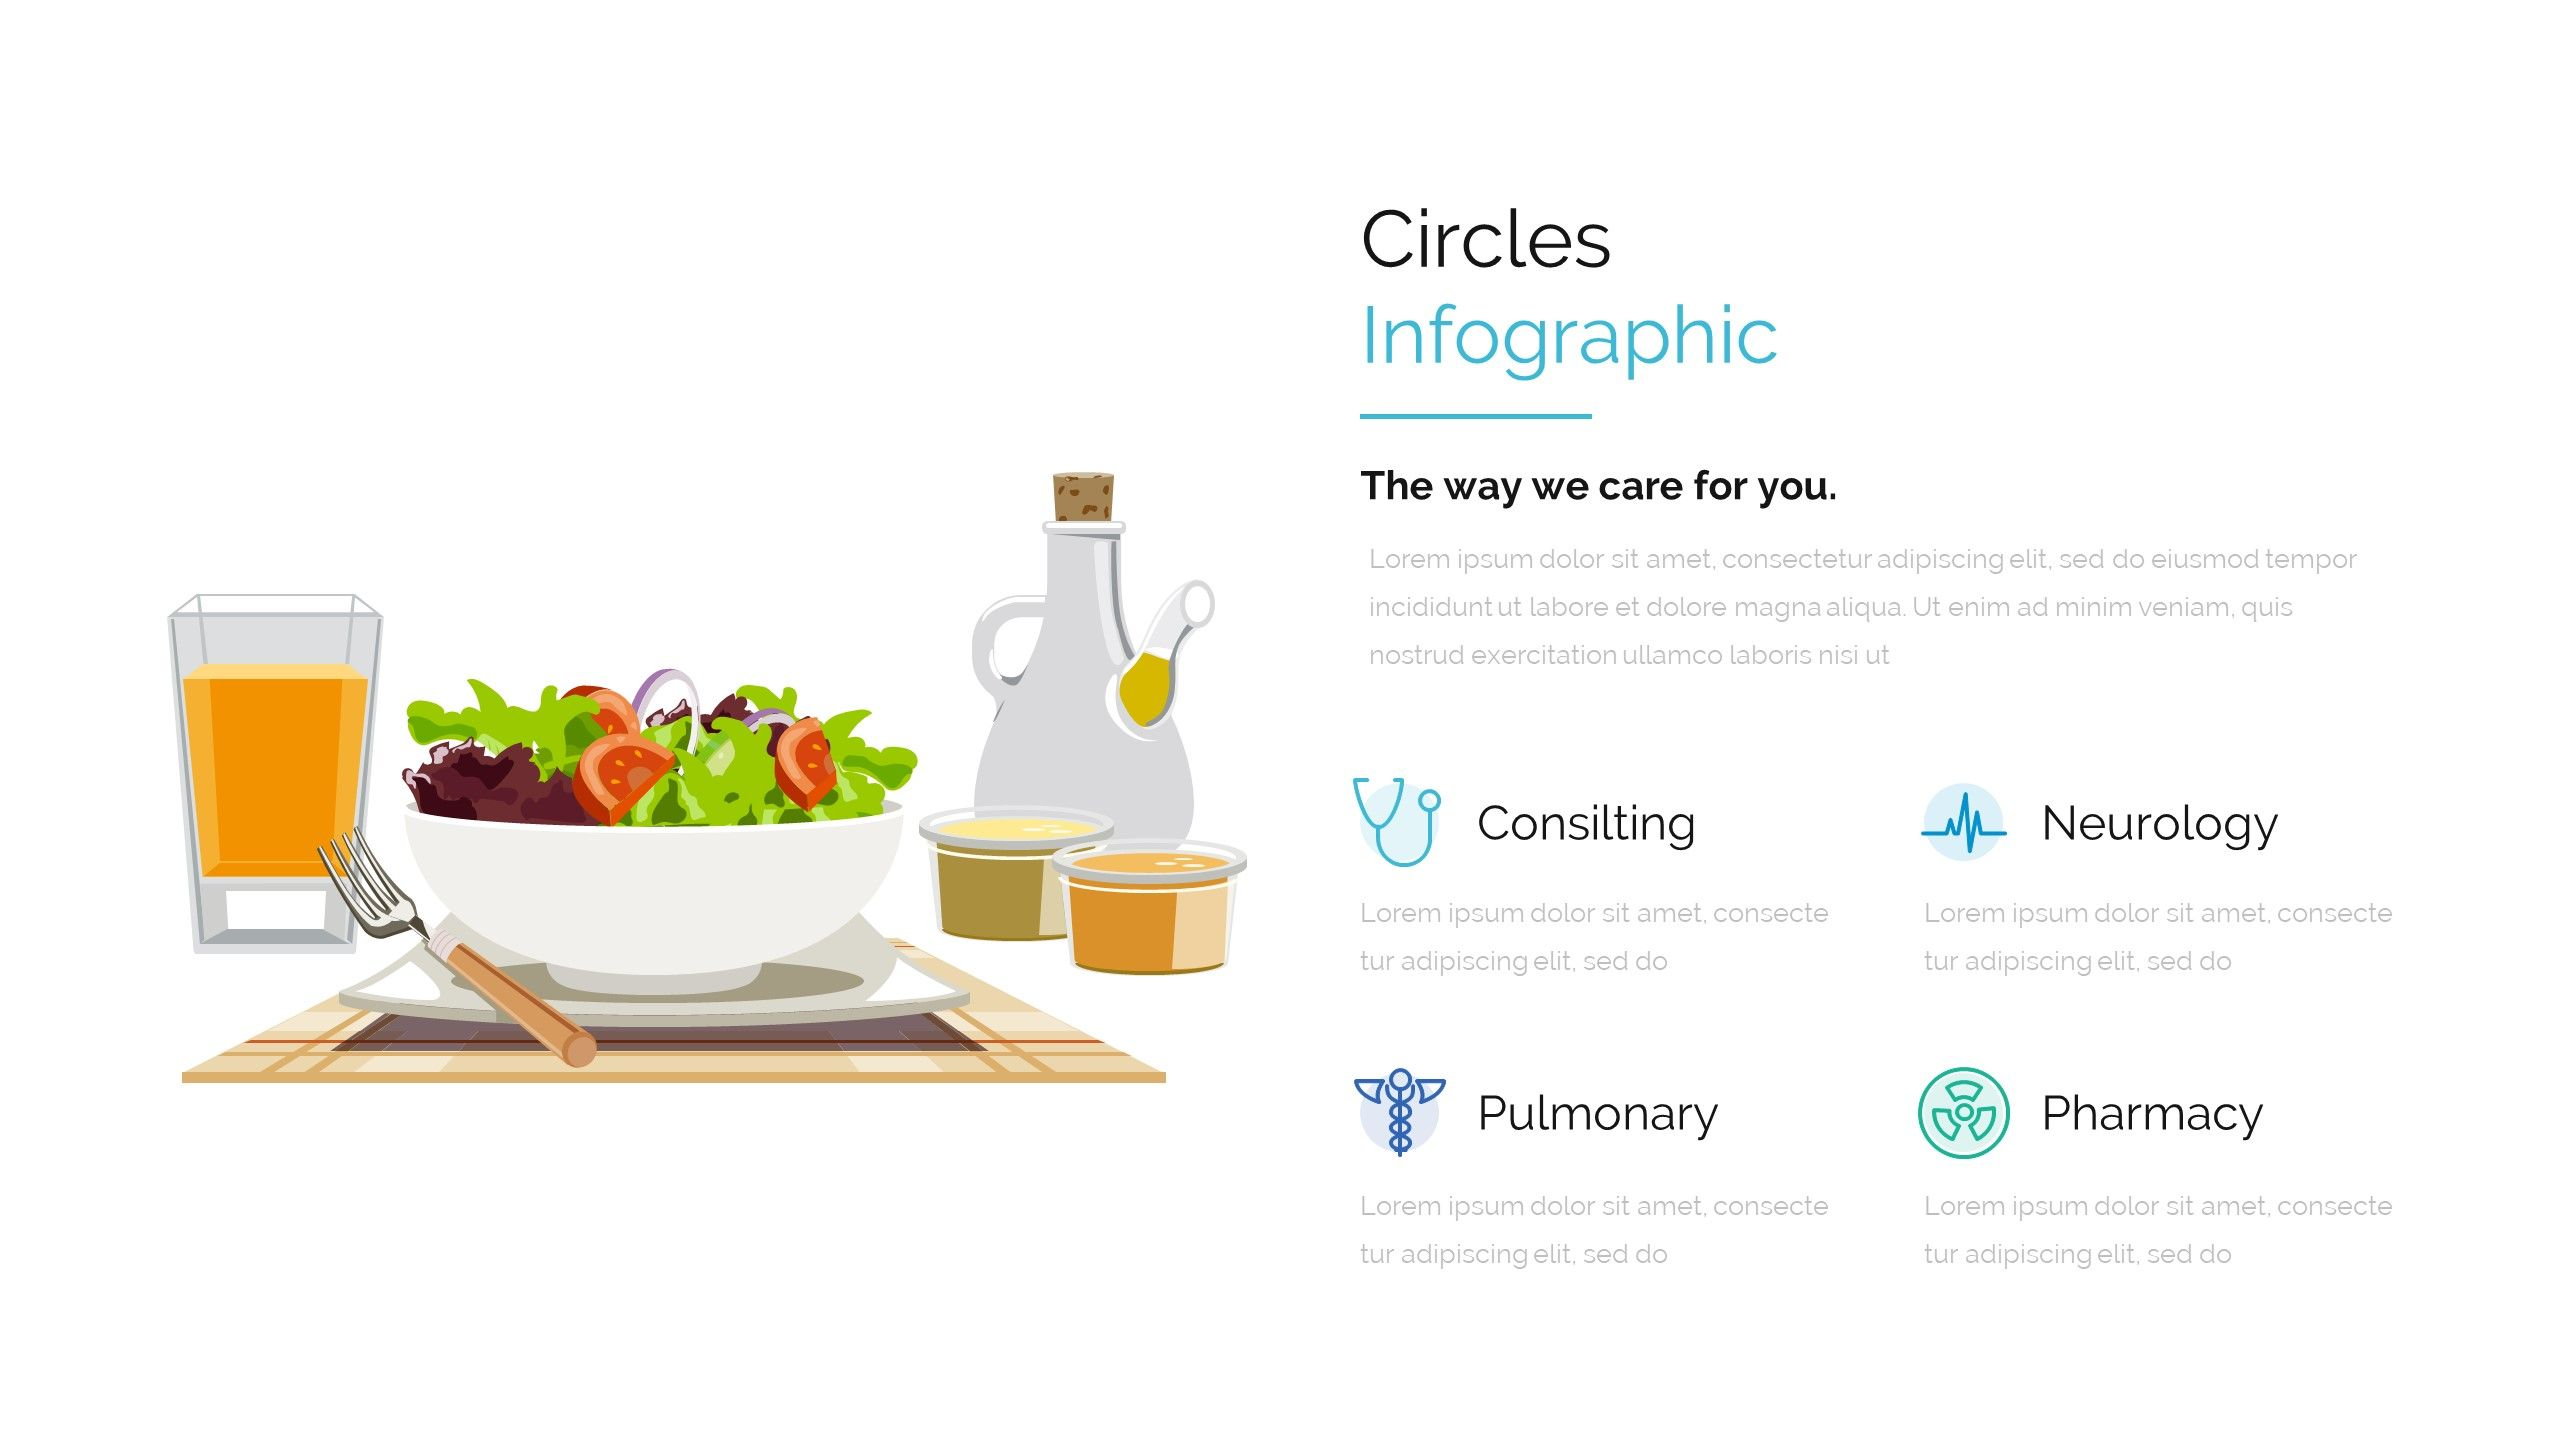 Modern medicine and healthcare powerpoint template